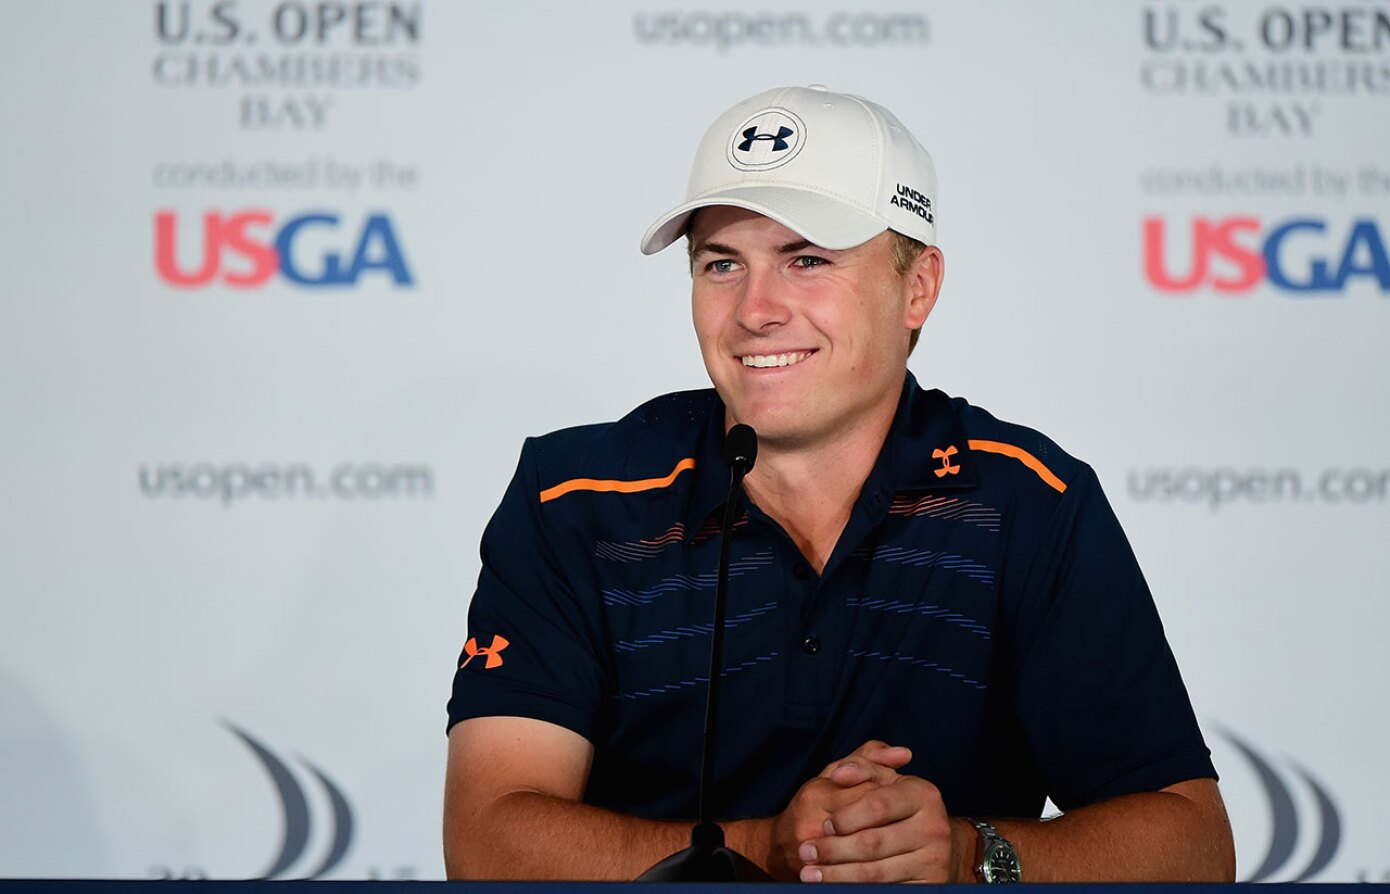 2015 U.S. Open Championship: Preview Day 1